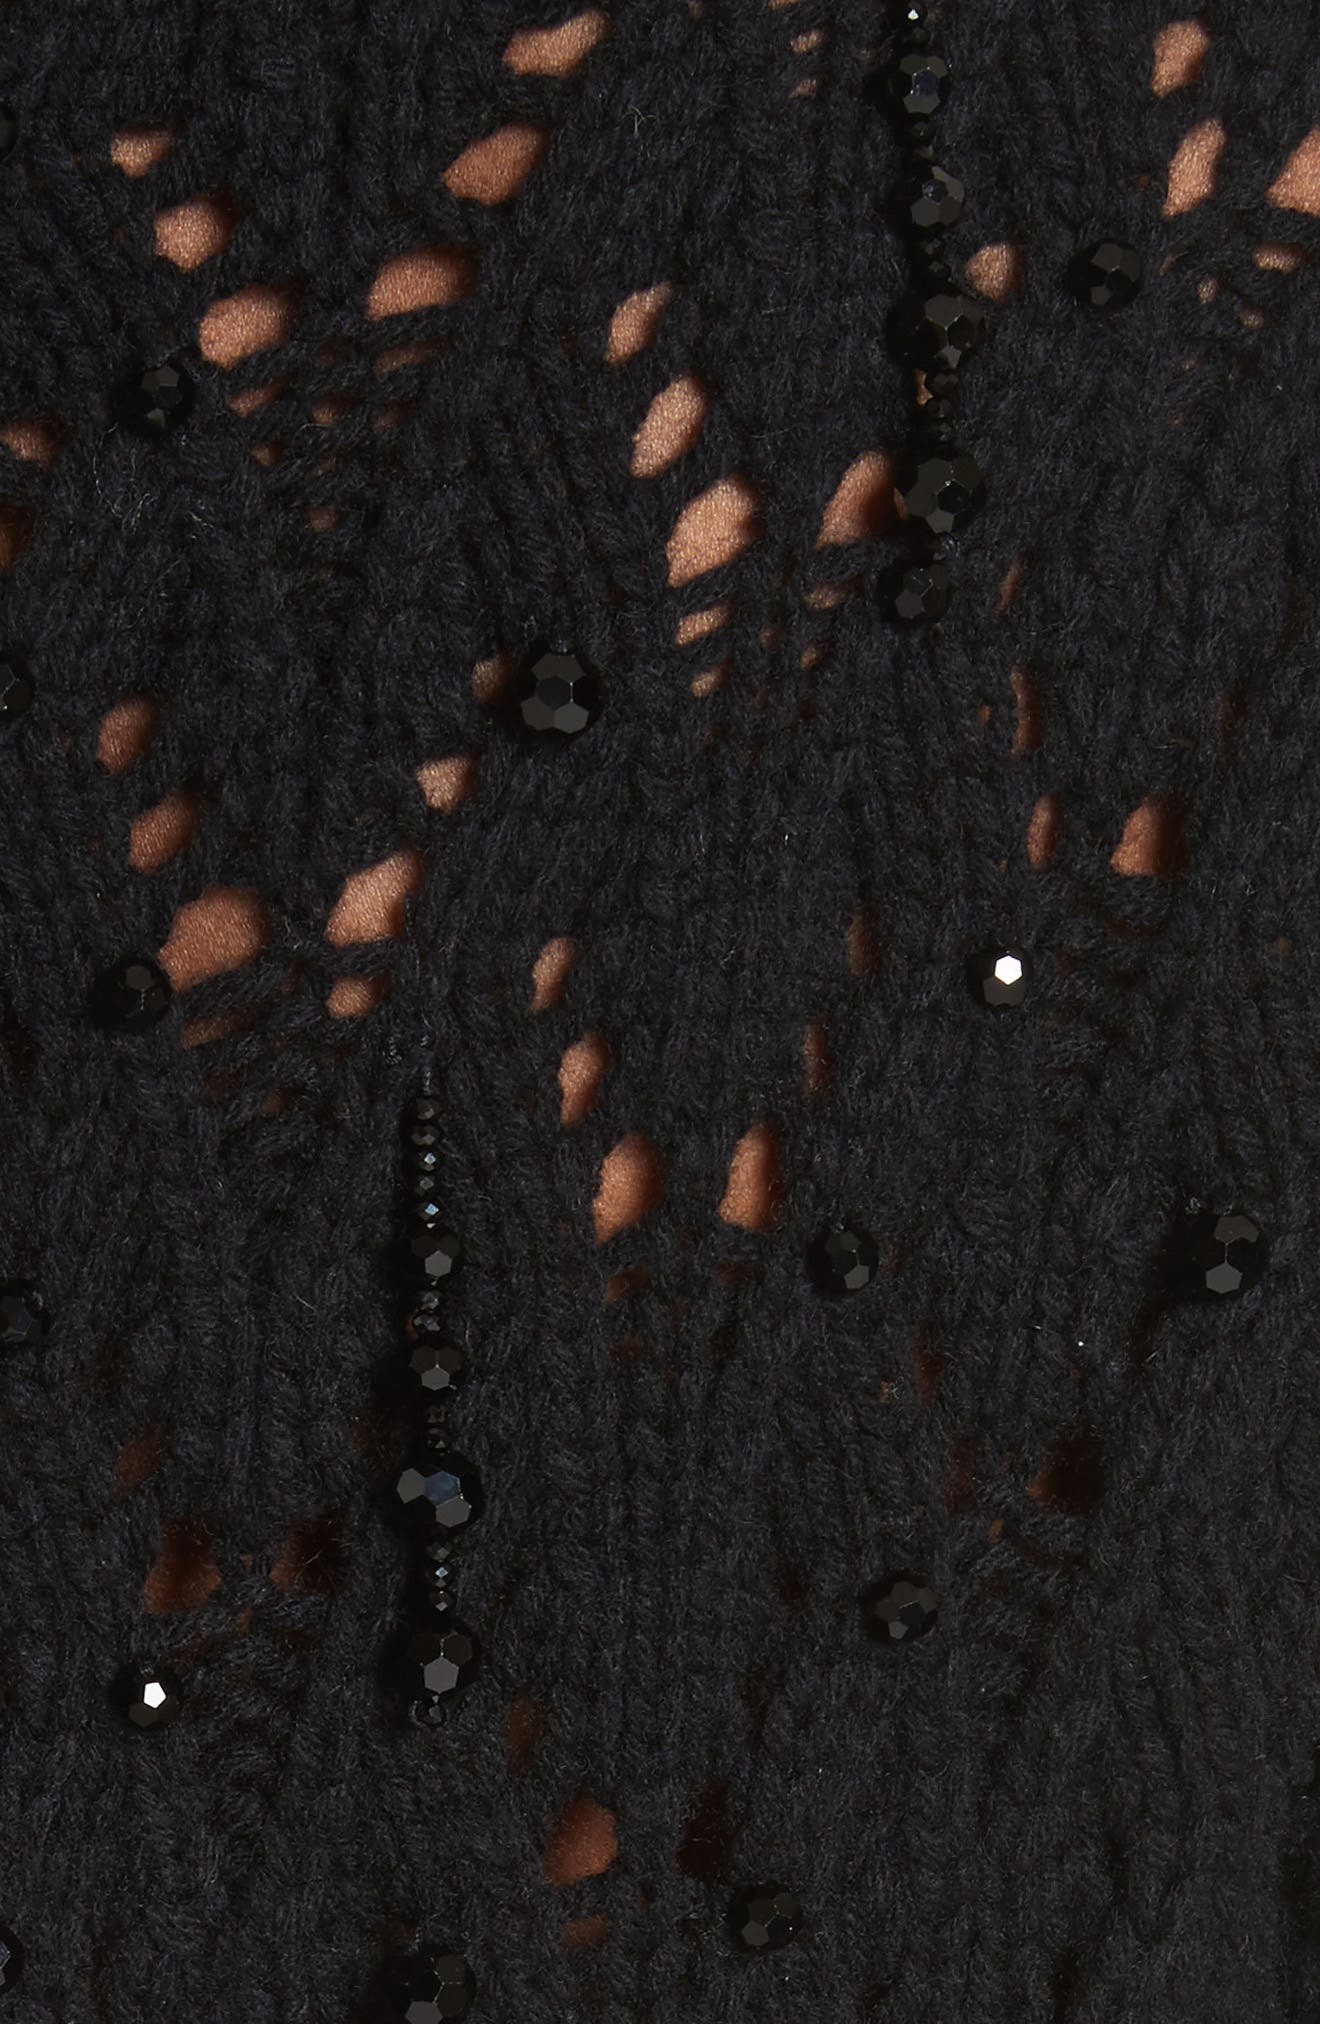 Beaded Wool & Cashmere Cardigan,                             Alternate thumbnail 8, color,                             Black